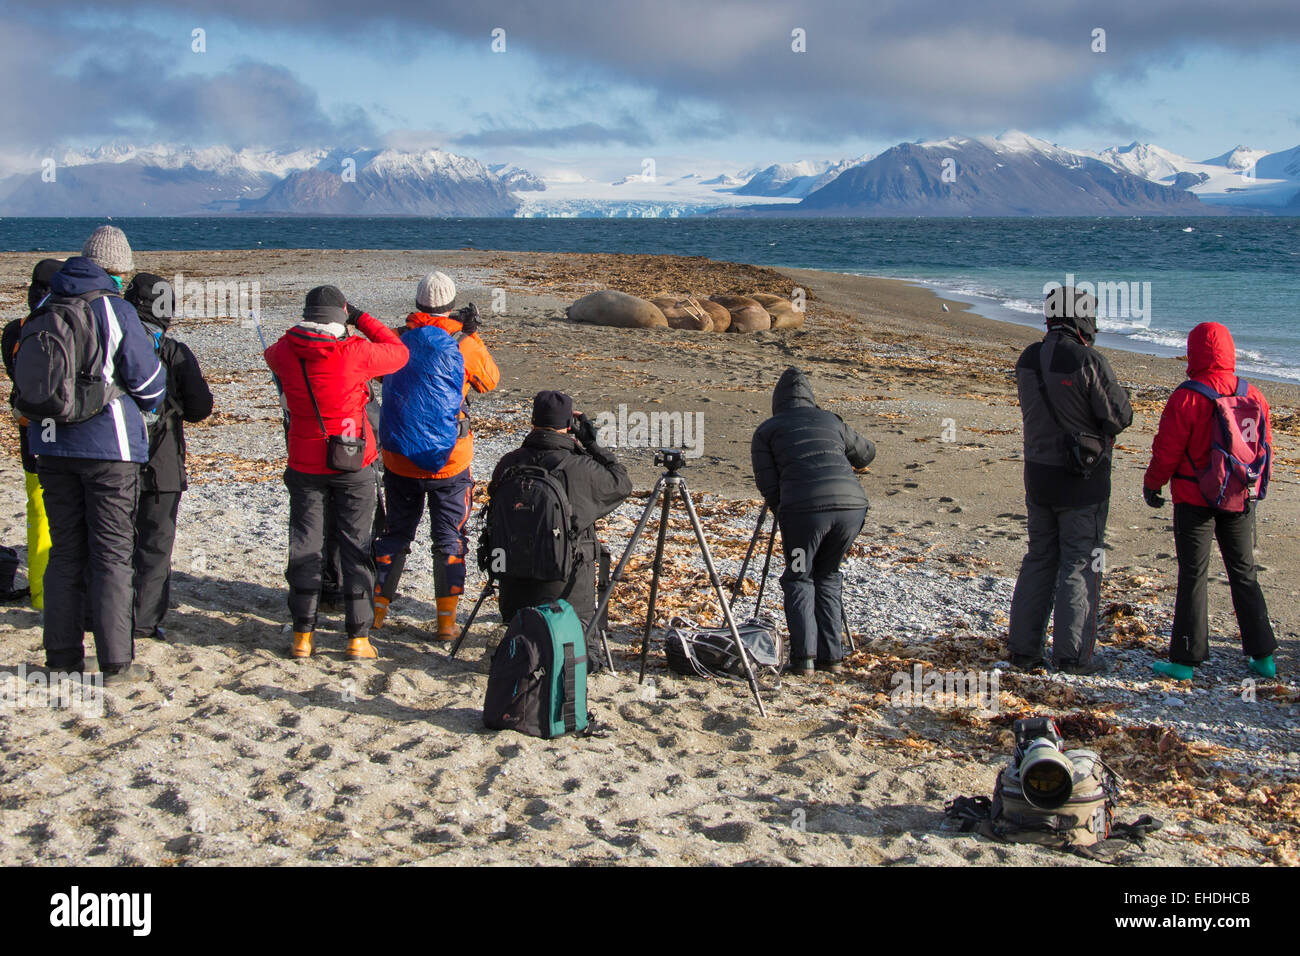 Tourists photographing a group of walruses (Odobenus rosmarus) on the beach along the Arctic ocean coast, Svalbard, - Stock Image